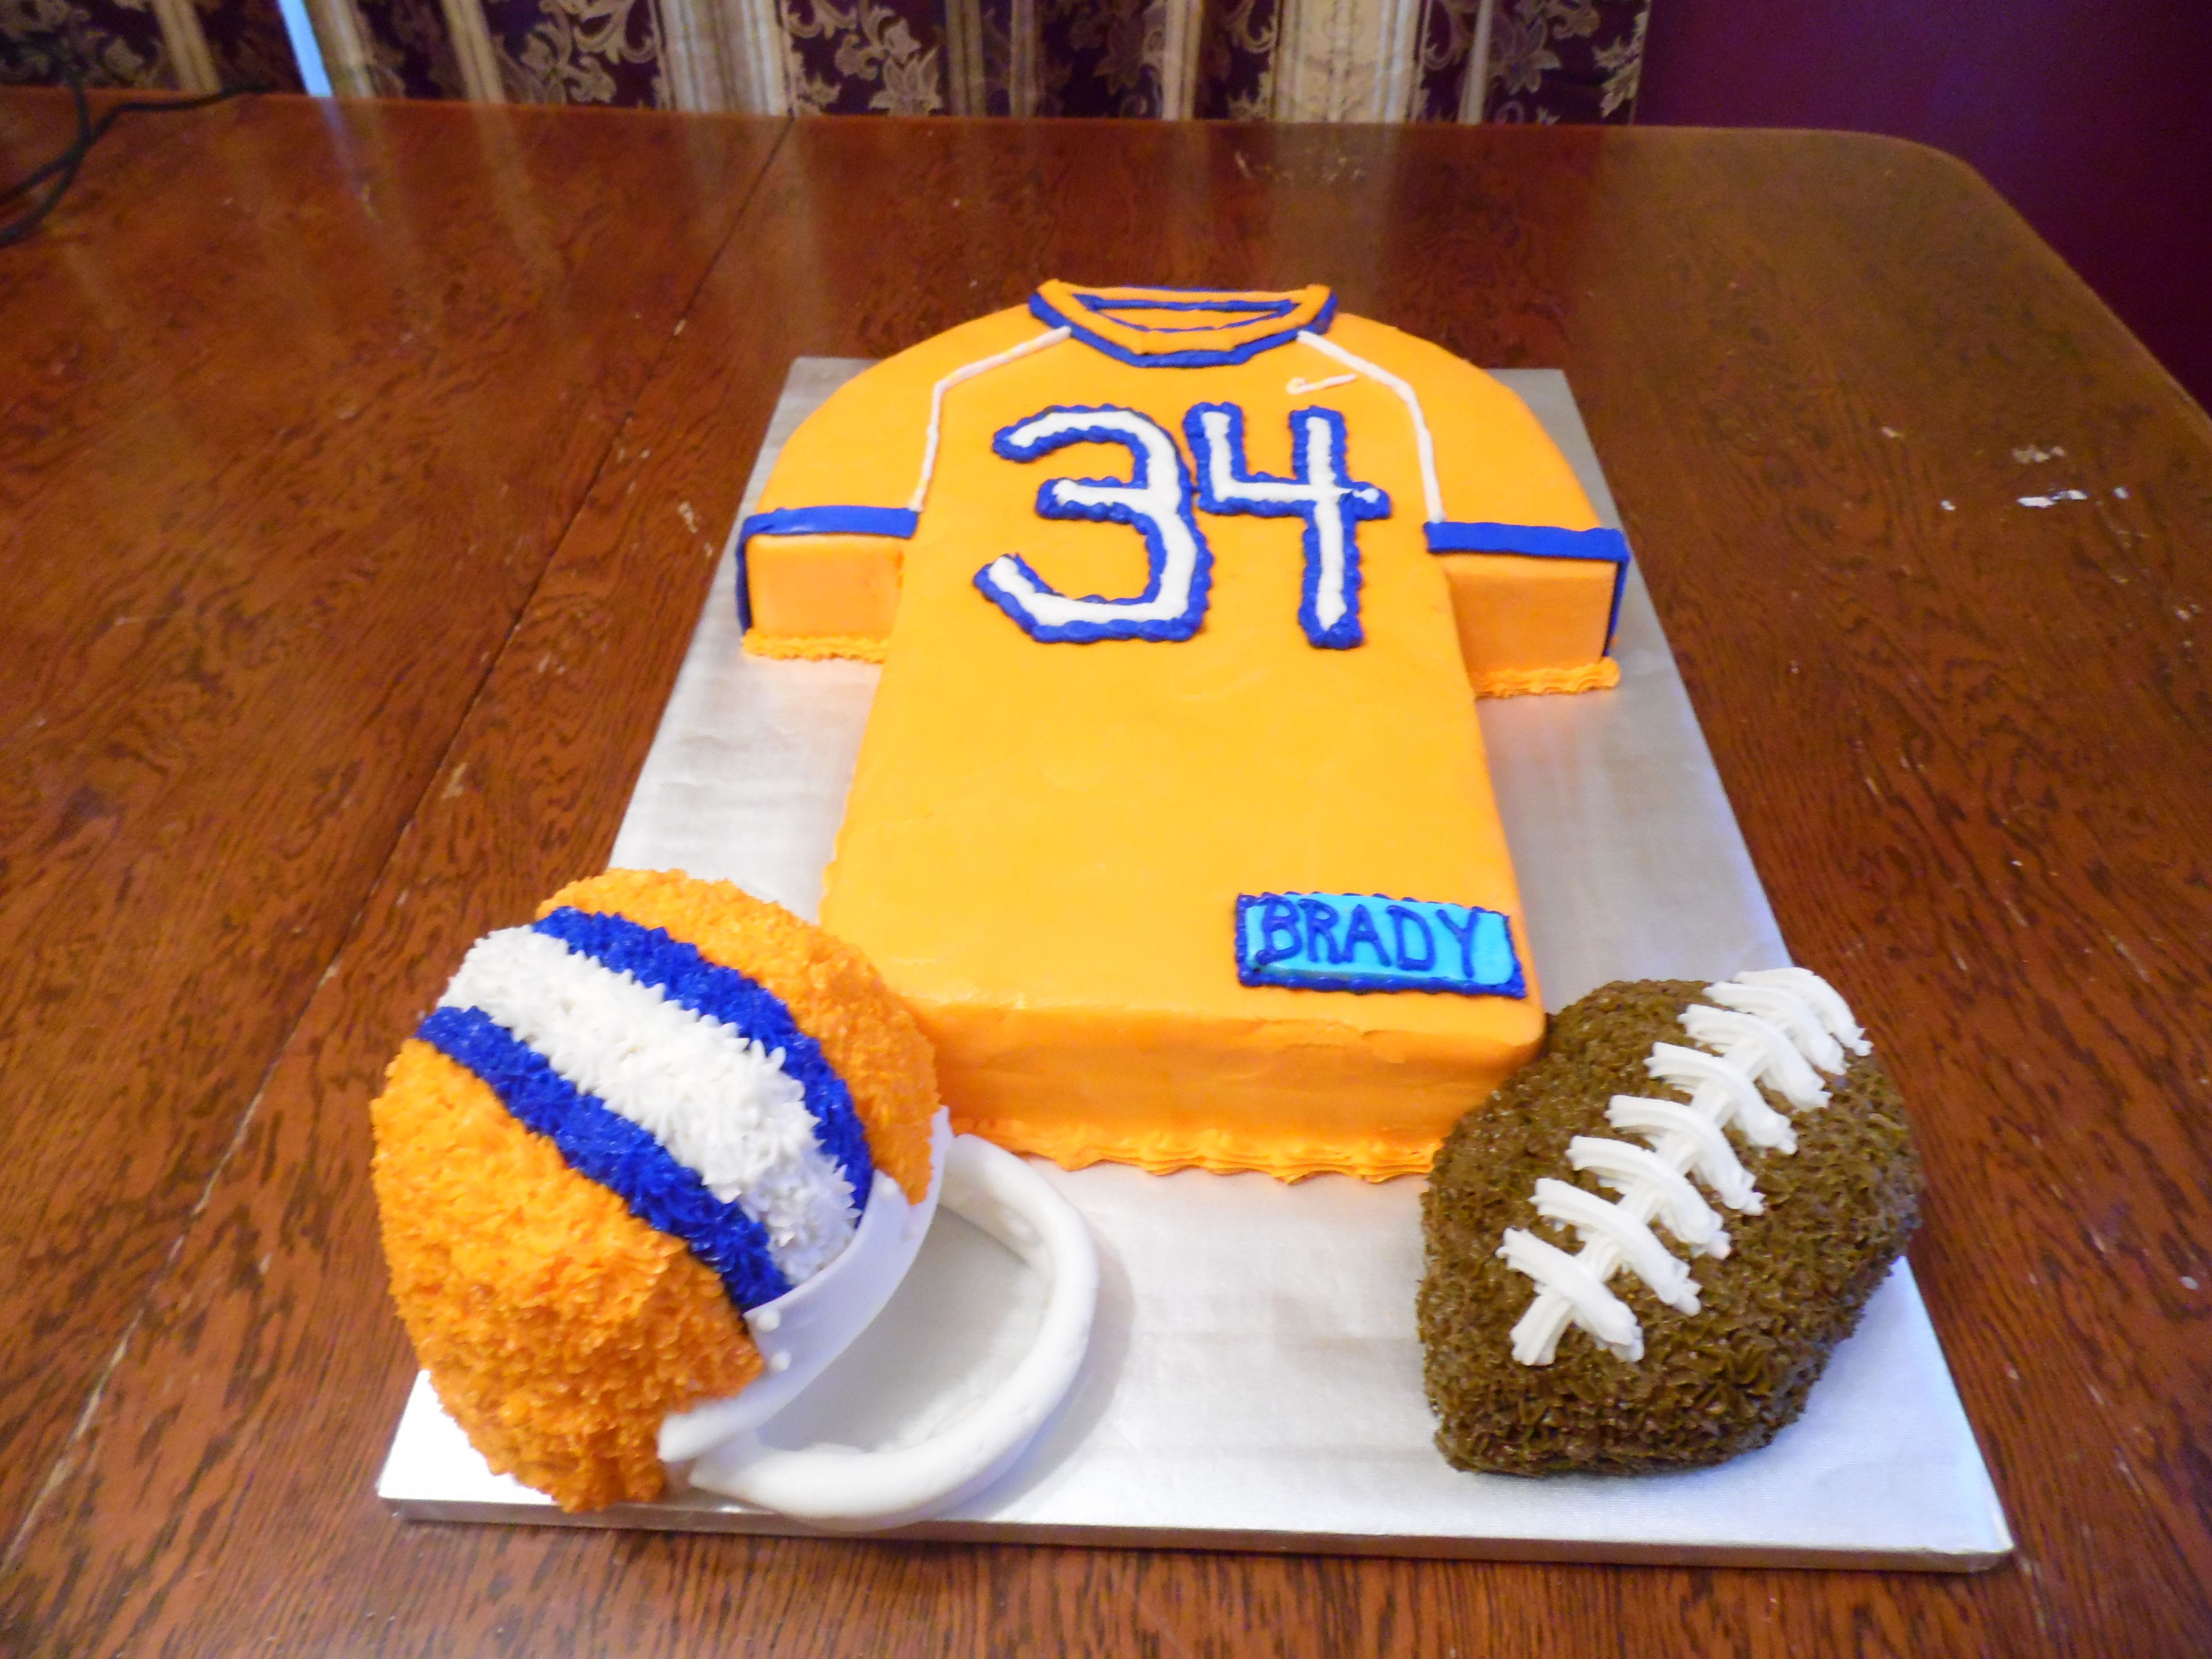 c505eb8d2 Jersey Football cake. I baked an 11x15 cake and cut it into the shape of a T -shirt. Wilton sales a T-shirt pan you can use. It will hold one cake  batter for ...